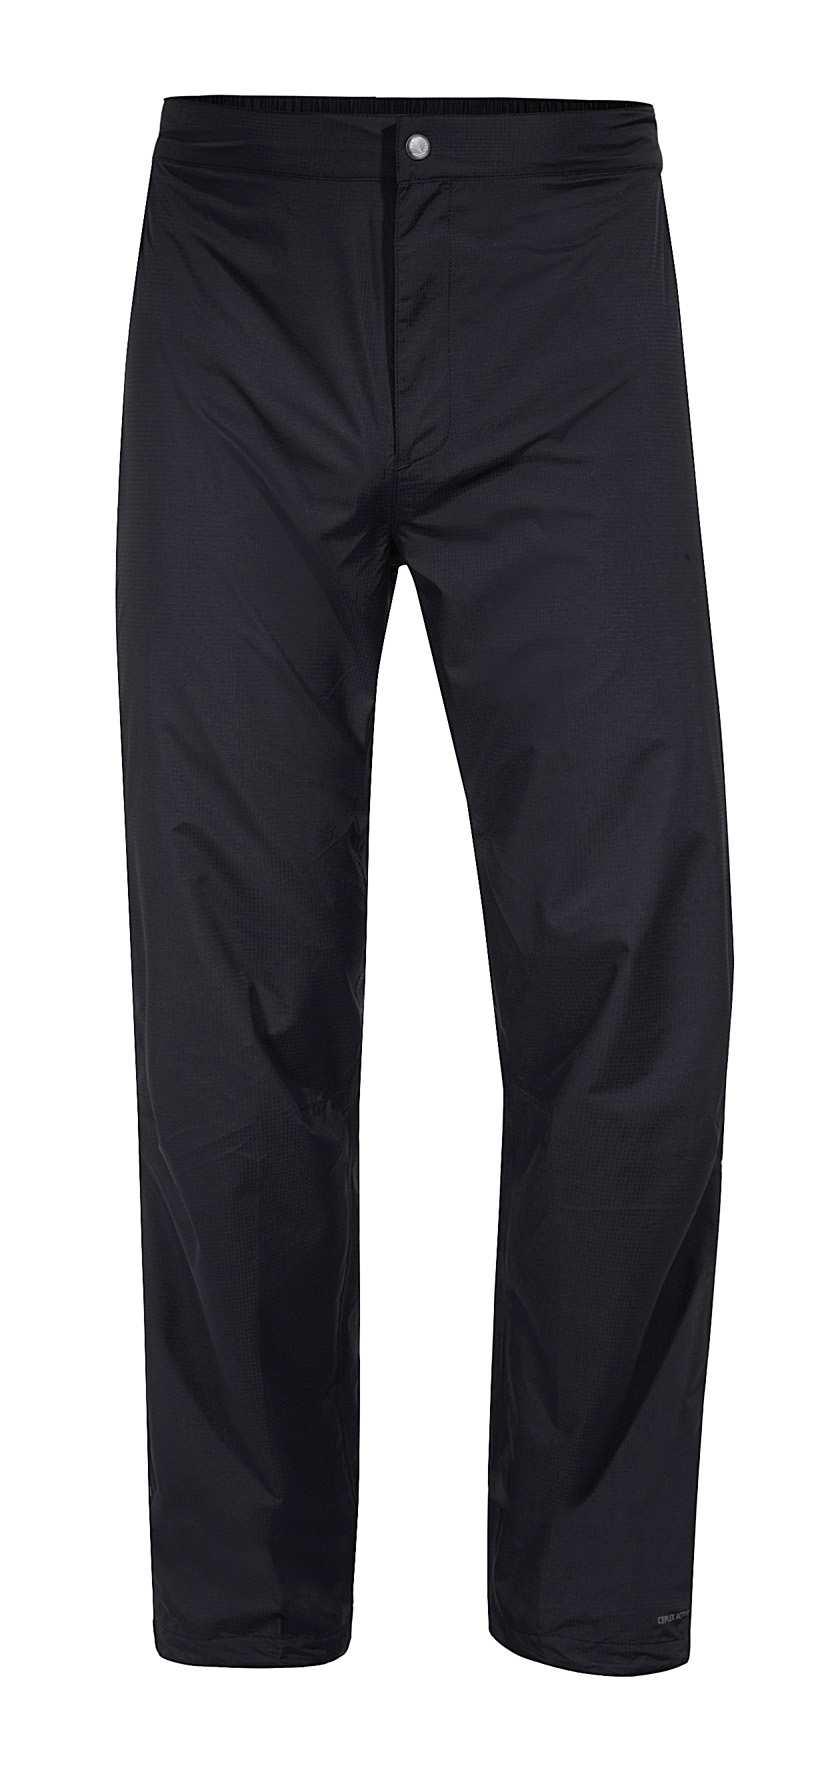 VAUDE Men´s Yaras Rain Pants black Größe XXL - schneider-sports